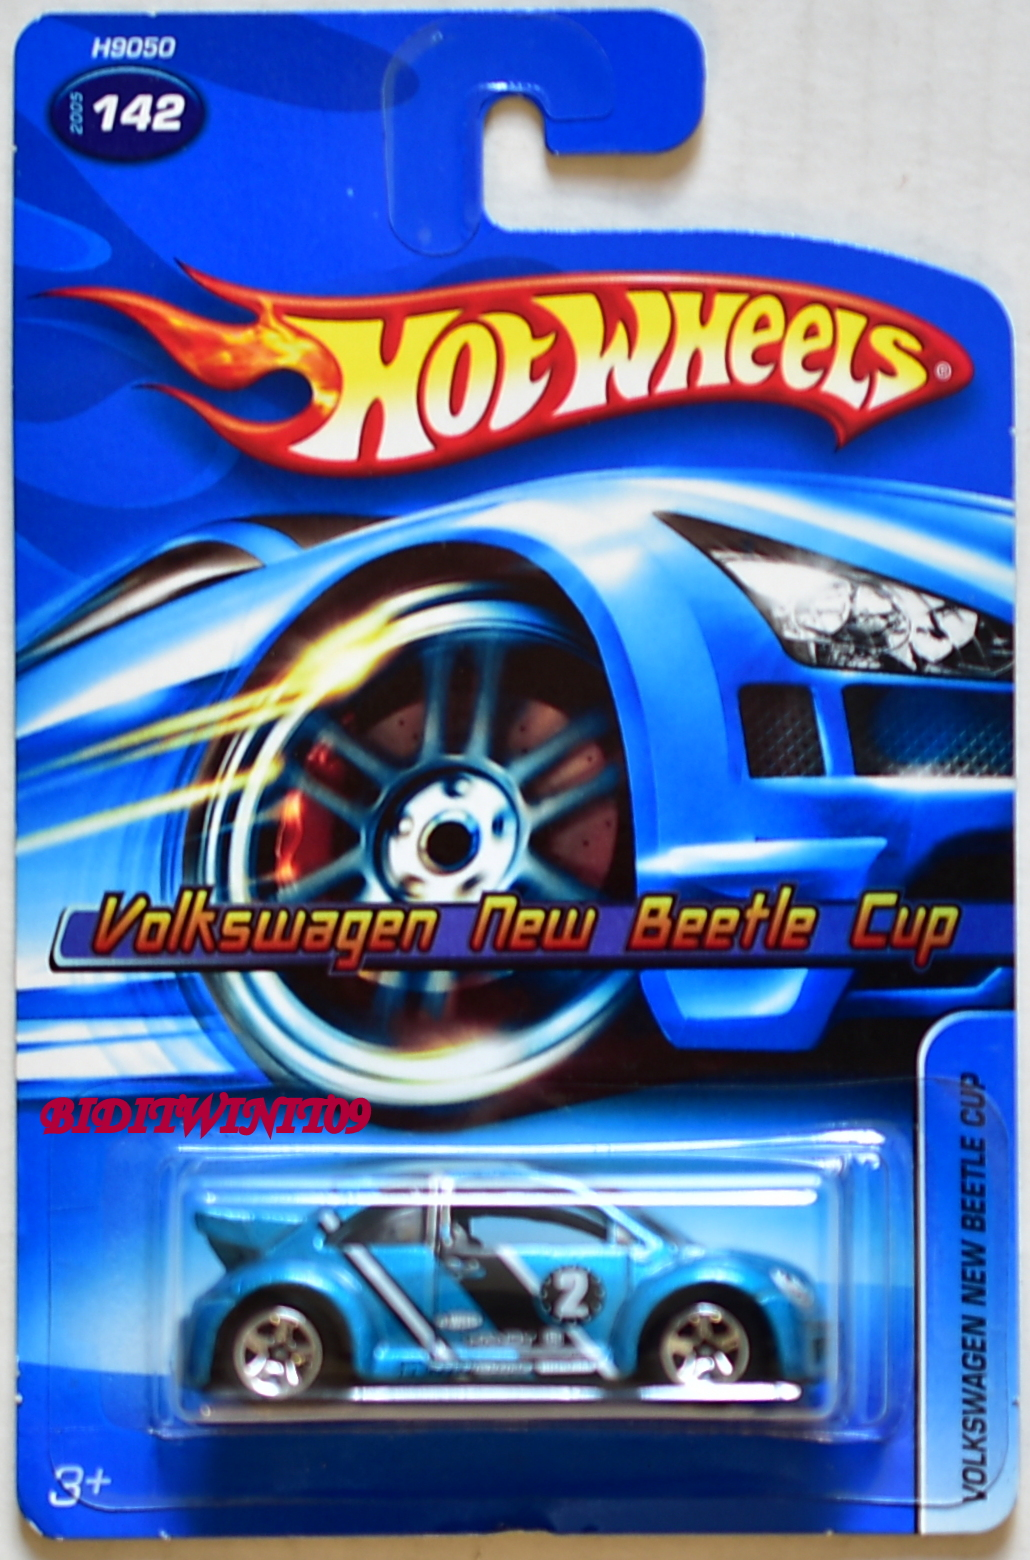 HOT WHEELS 2005 VOLKSWAGEN NEW BEETLE CUP #142 W/ 5 SP WHEELS BLUE - Click Image to Close